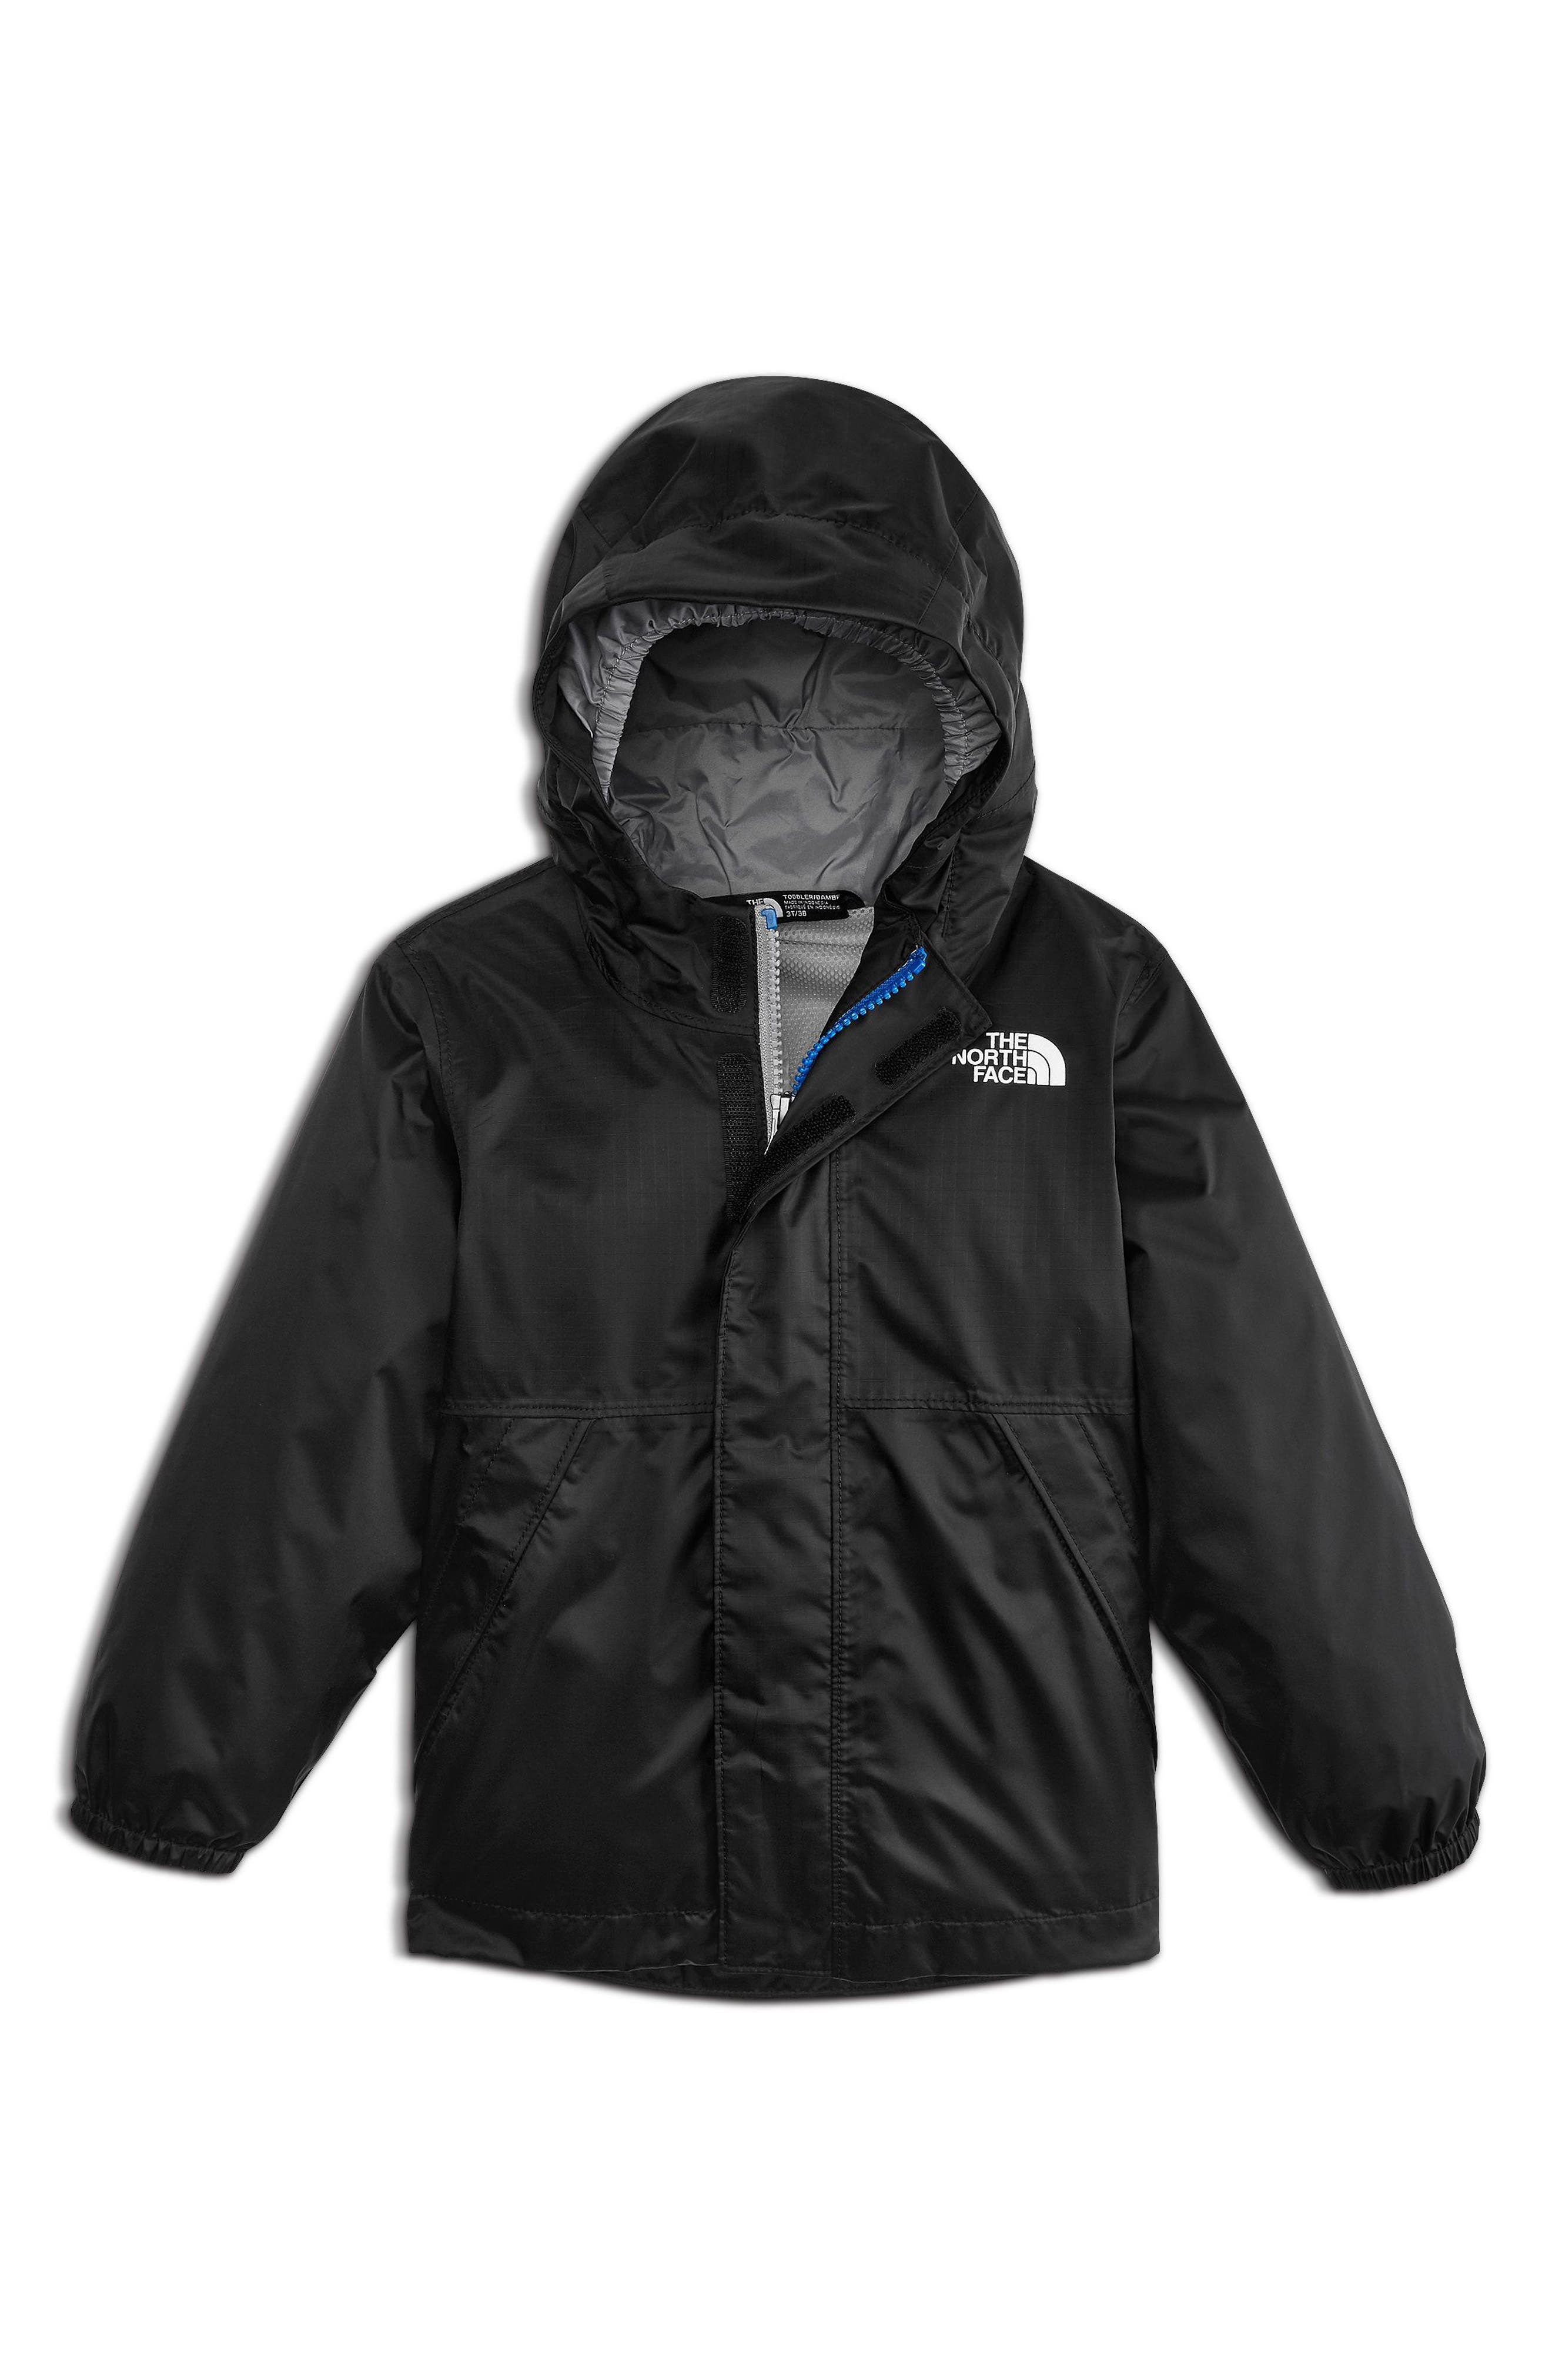 Main Image - The North Face Stormy Rain TriClimate® Waterproof 3-in-1 Jacket (Toddler Boys & Little Boys)